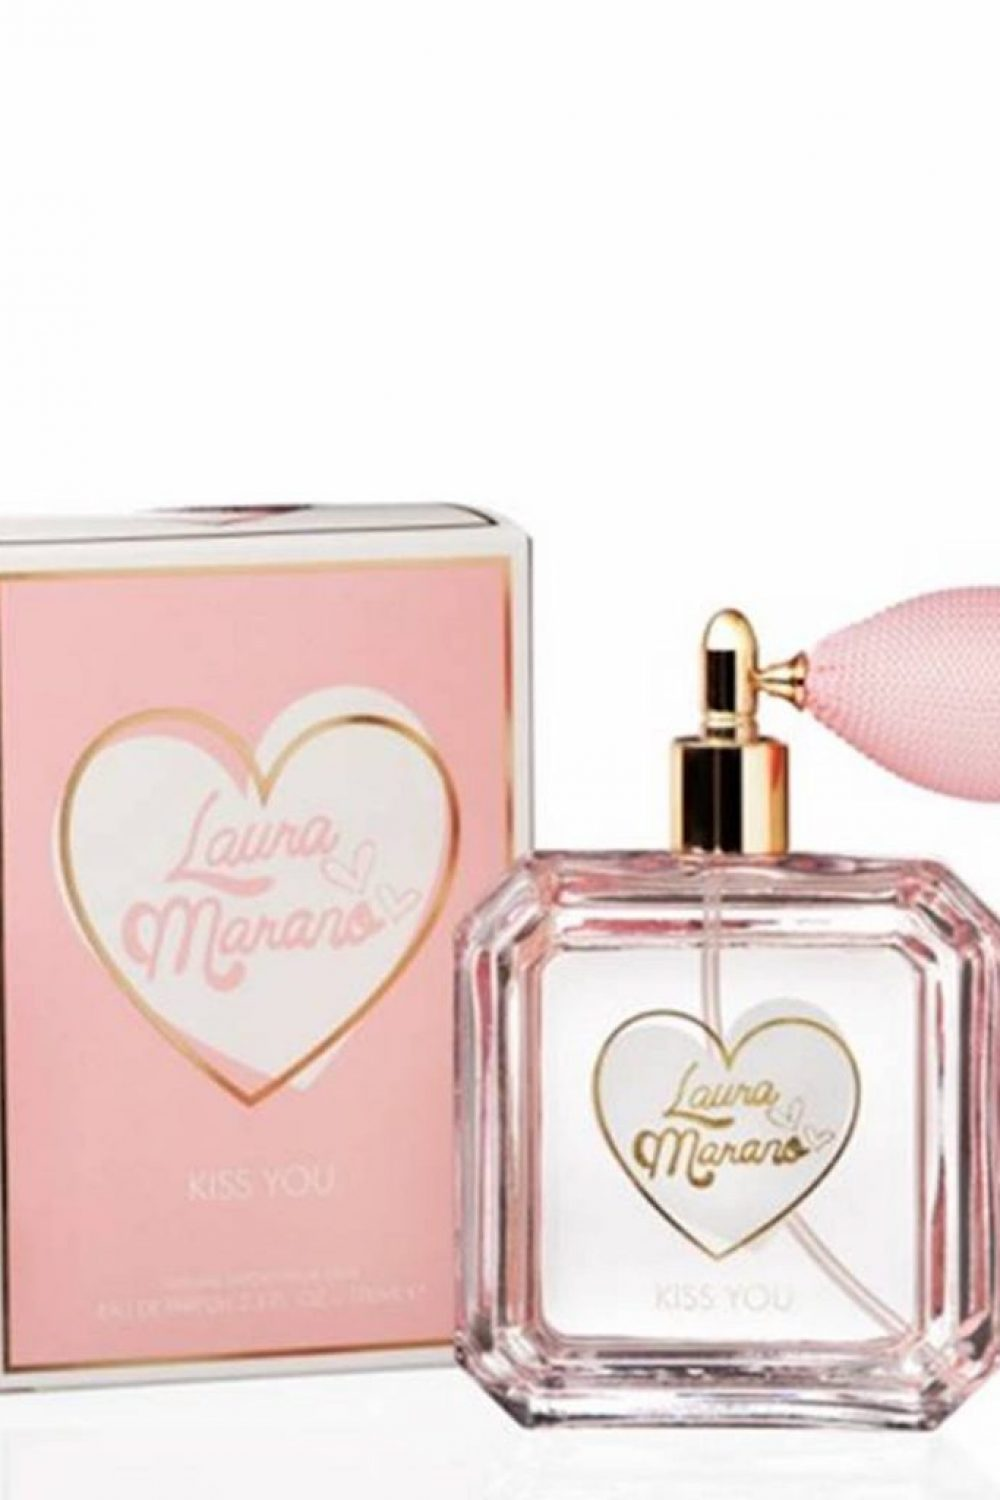 Laura Marano Fragrance